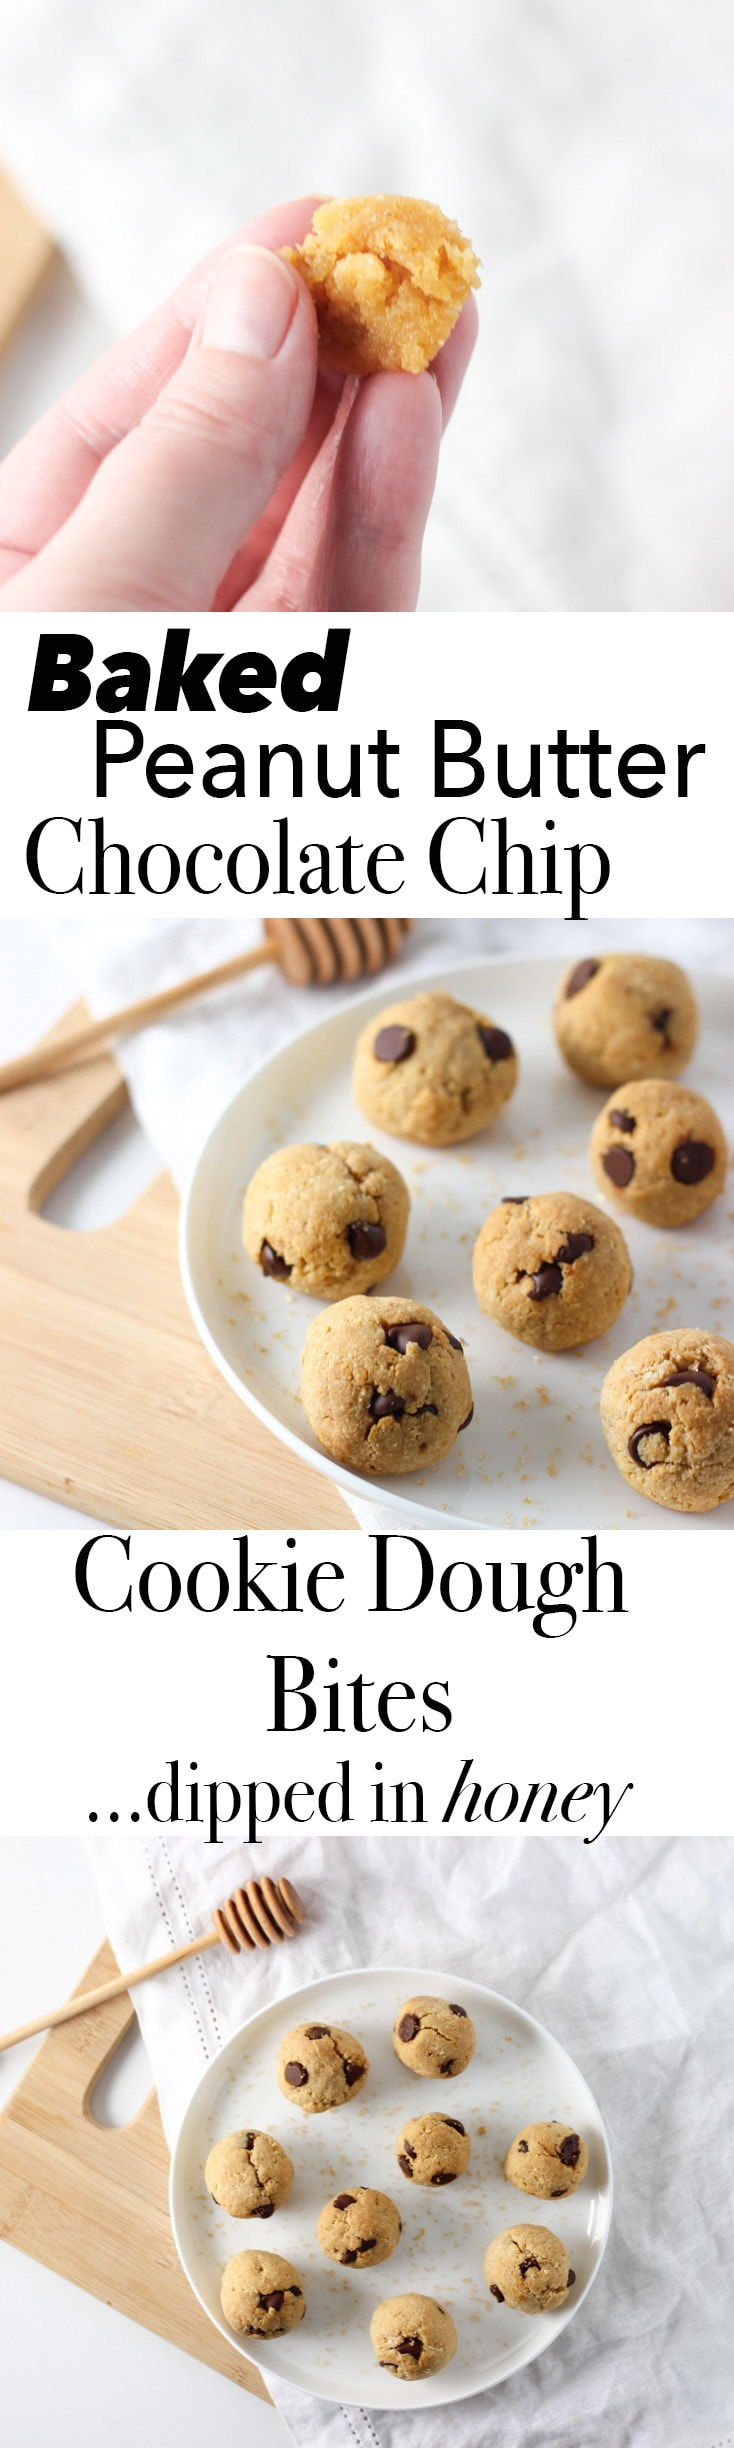 Chocolate Covered Eggless Cookie Dough Bites Recipe